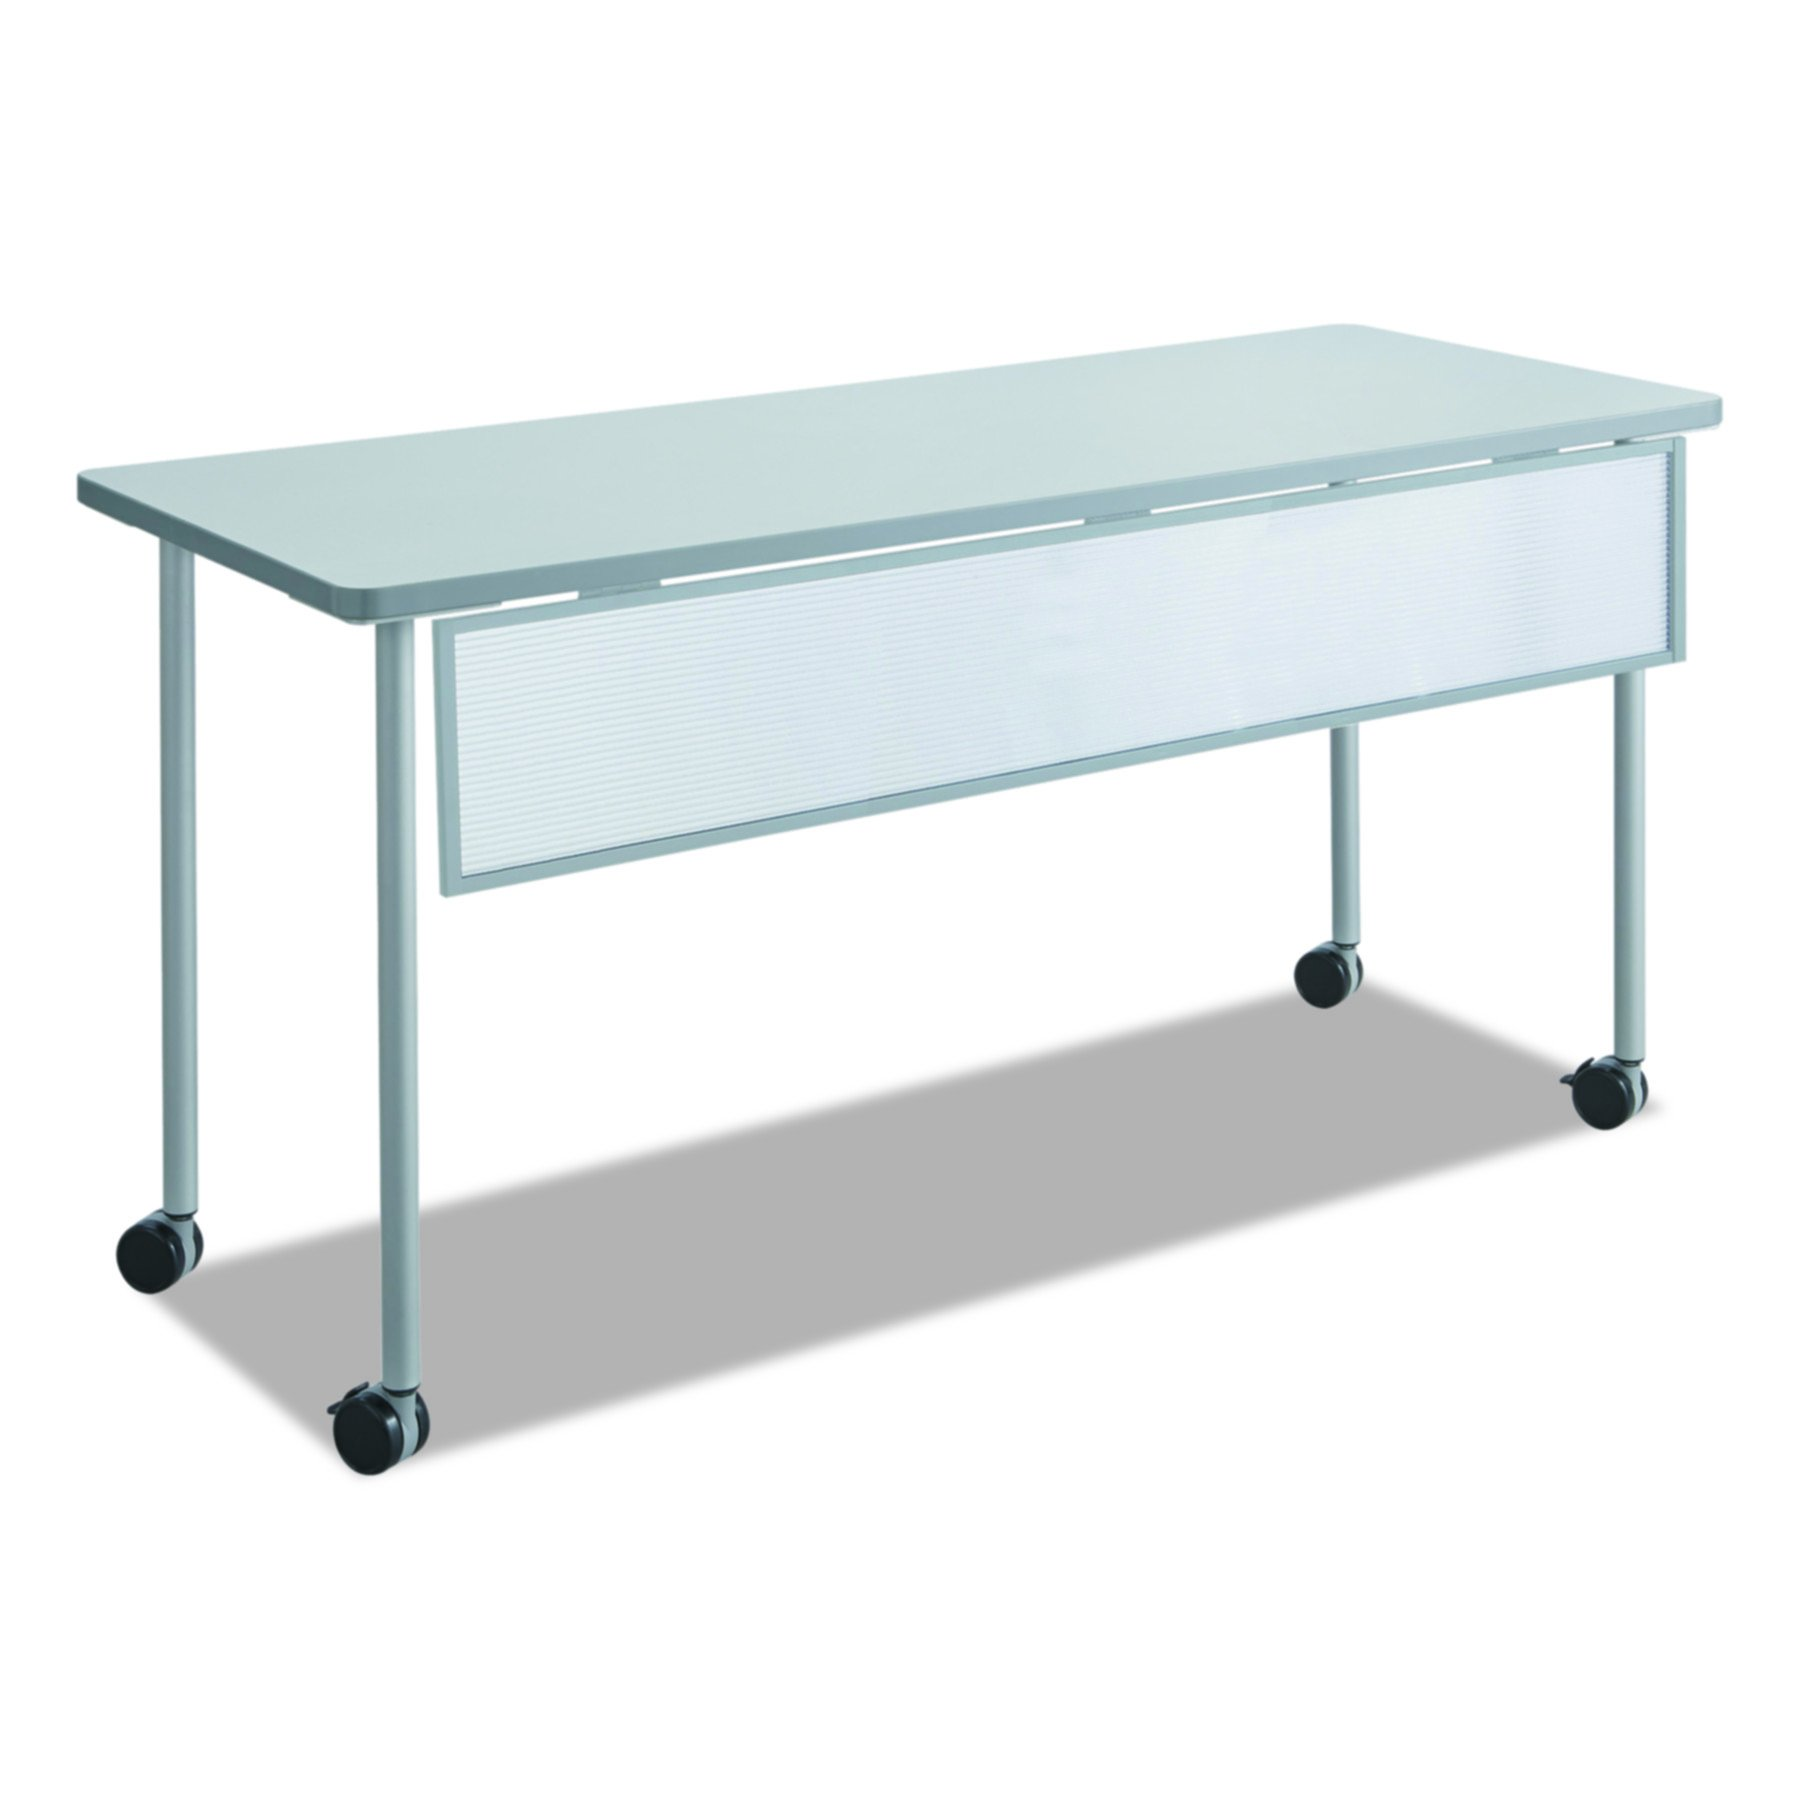 Safco Products 2076SL Impromptu Mobile Training Table Modesty Panel for 60''W Table (Table Top and Base sold separately), Silver Frame